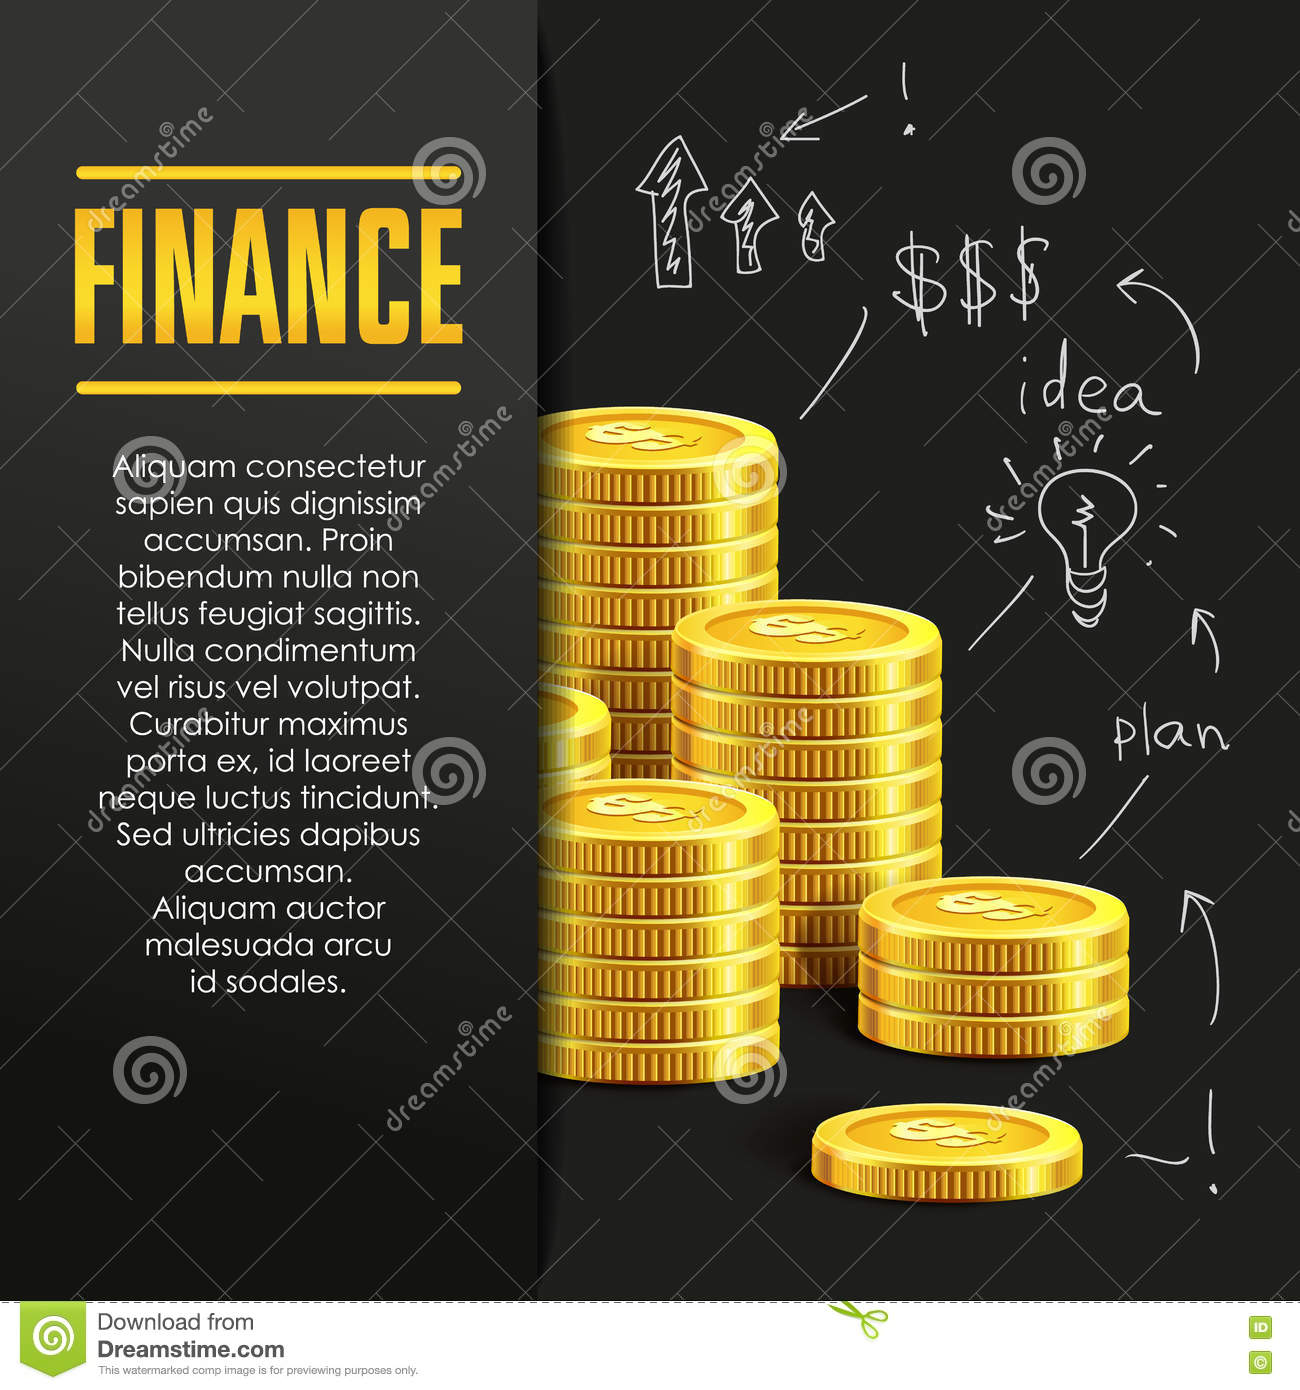 finance-poster-banner-design-template-golden-coins-copy-space-text-vector-illustration-money-making-bank-deposit-72183548.jpg